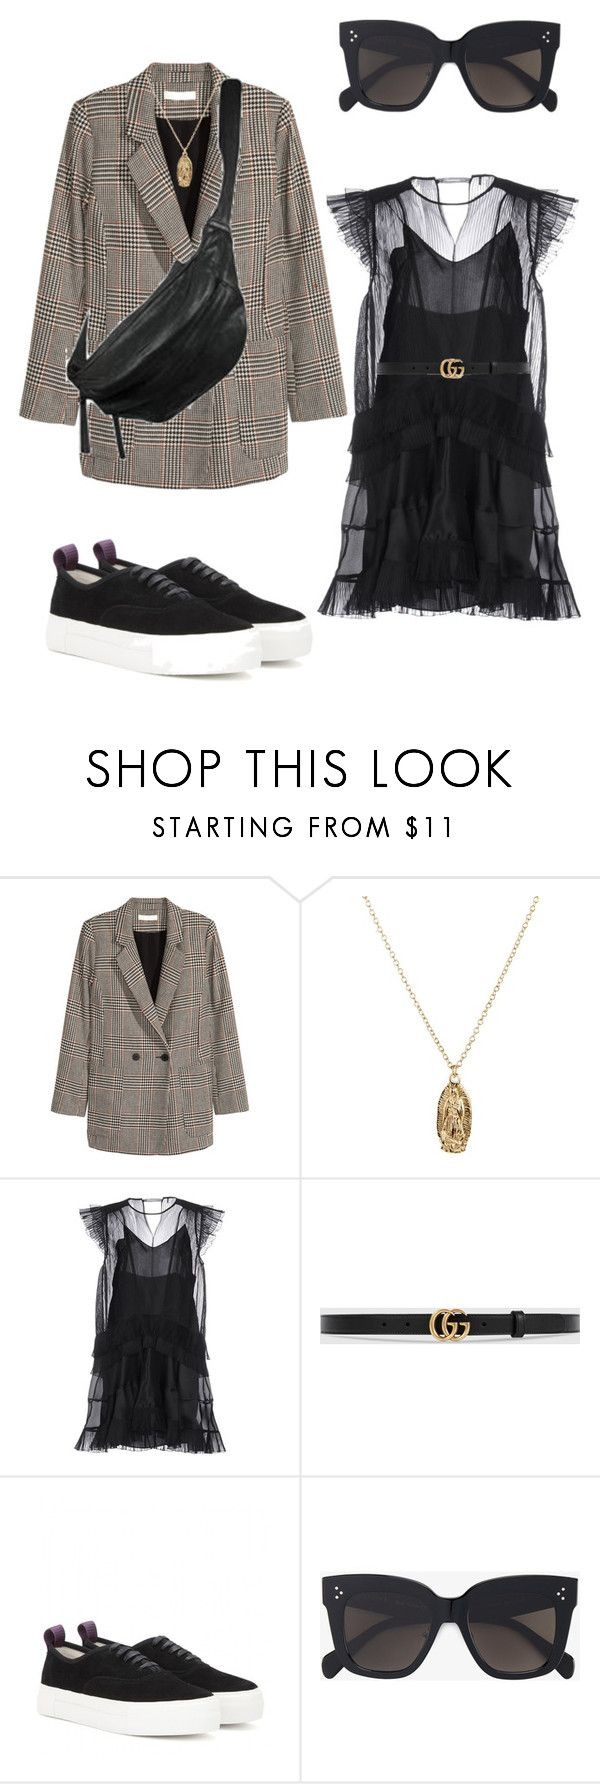 """""""Untitled #231"""" by fashiondisguise on Polyvore featuring Jakke, Yvonne Koné, ASOS, Isabel Marant, Gucci, Eytys and CÉLINE"""